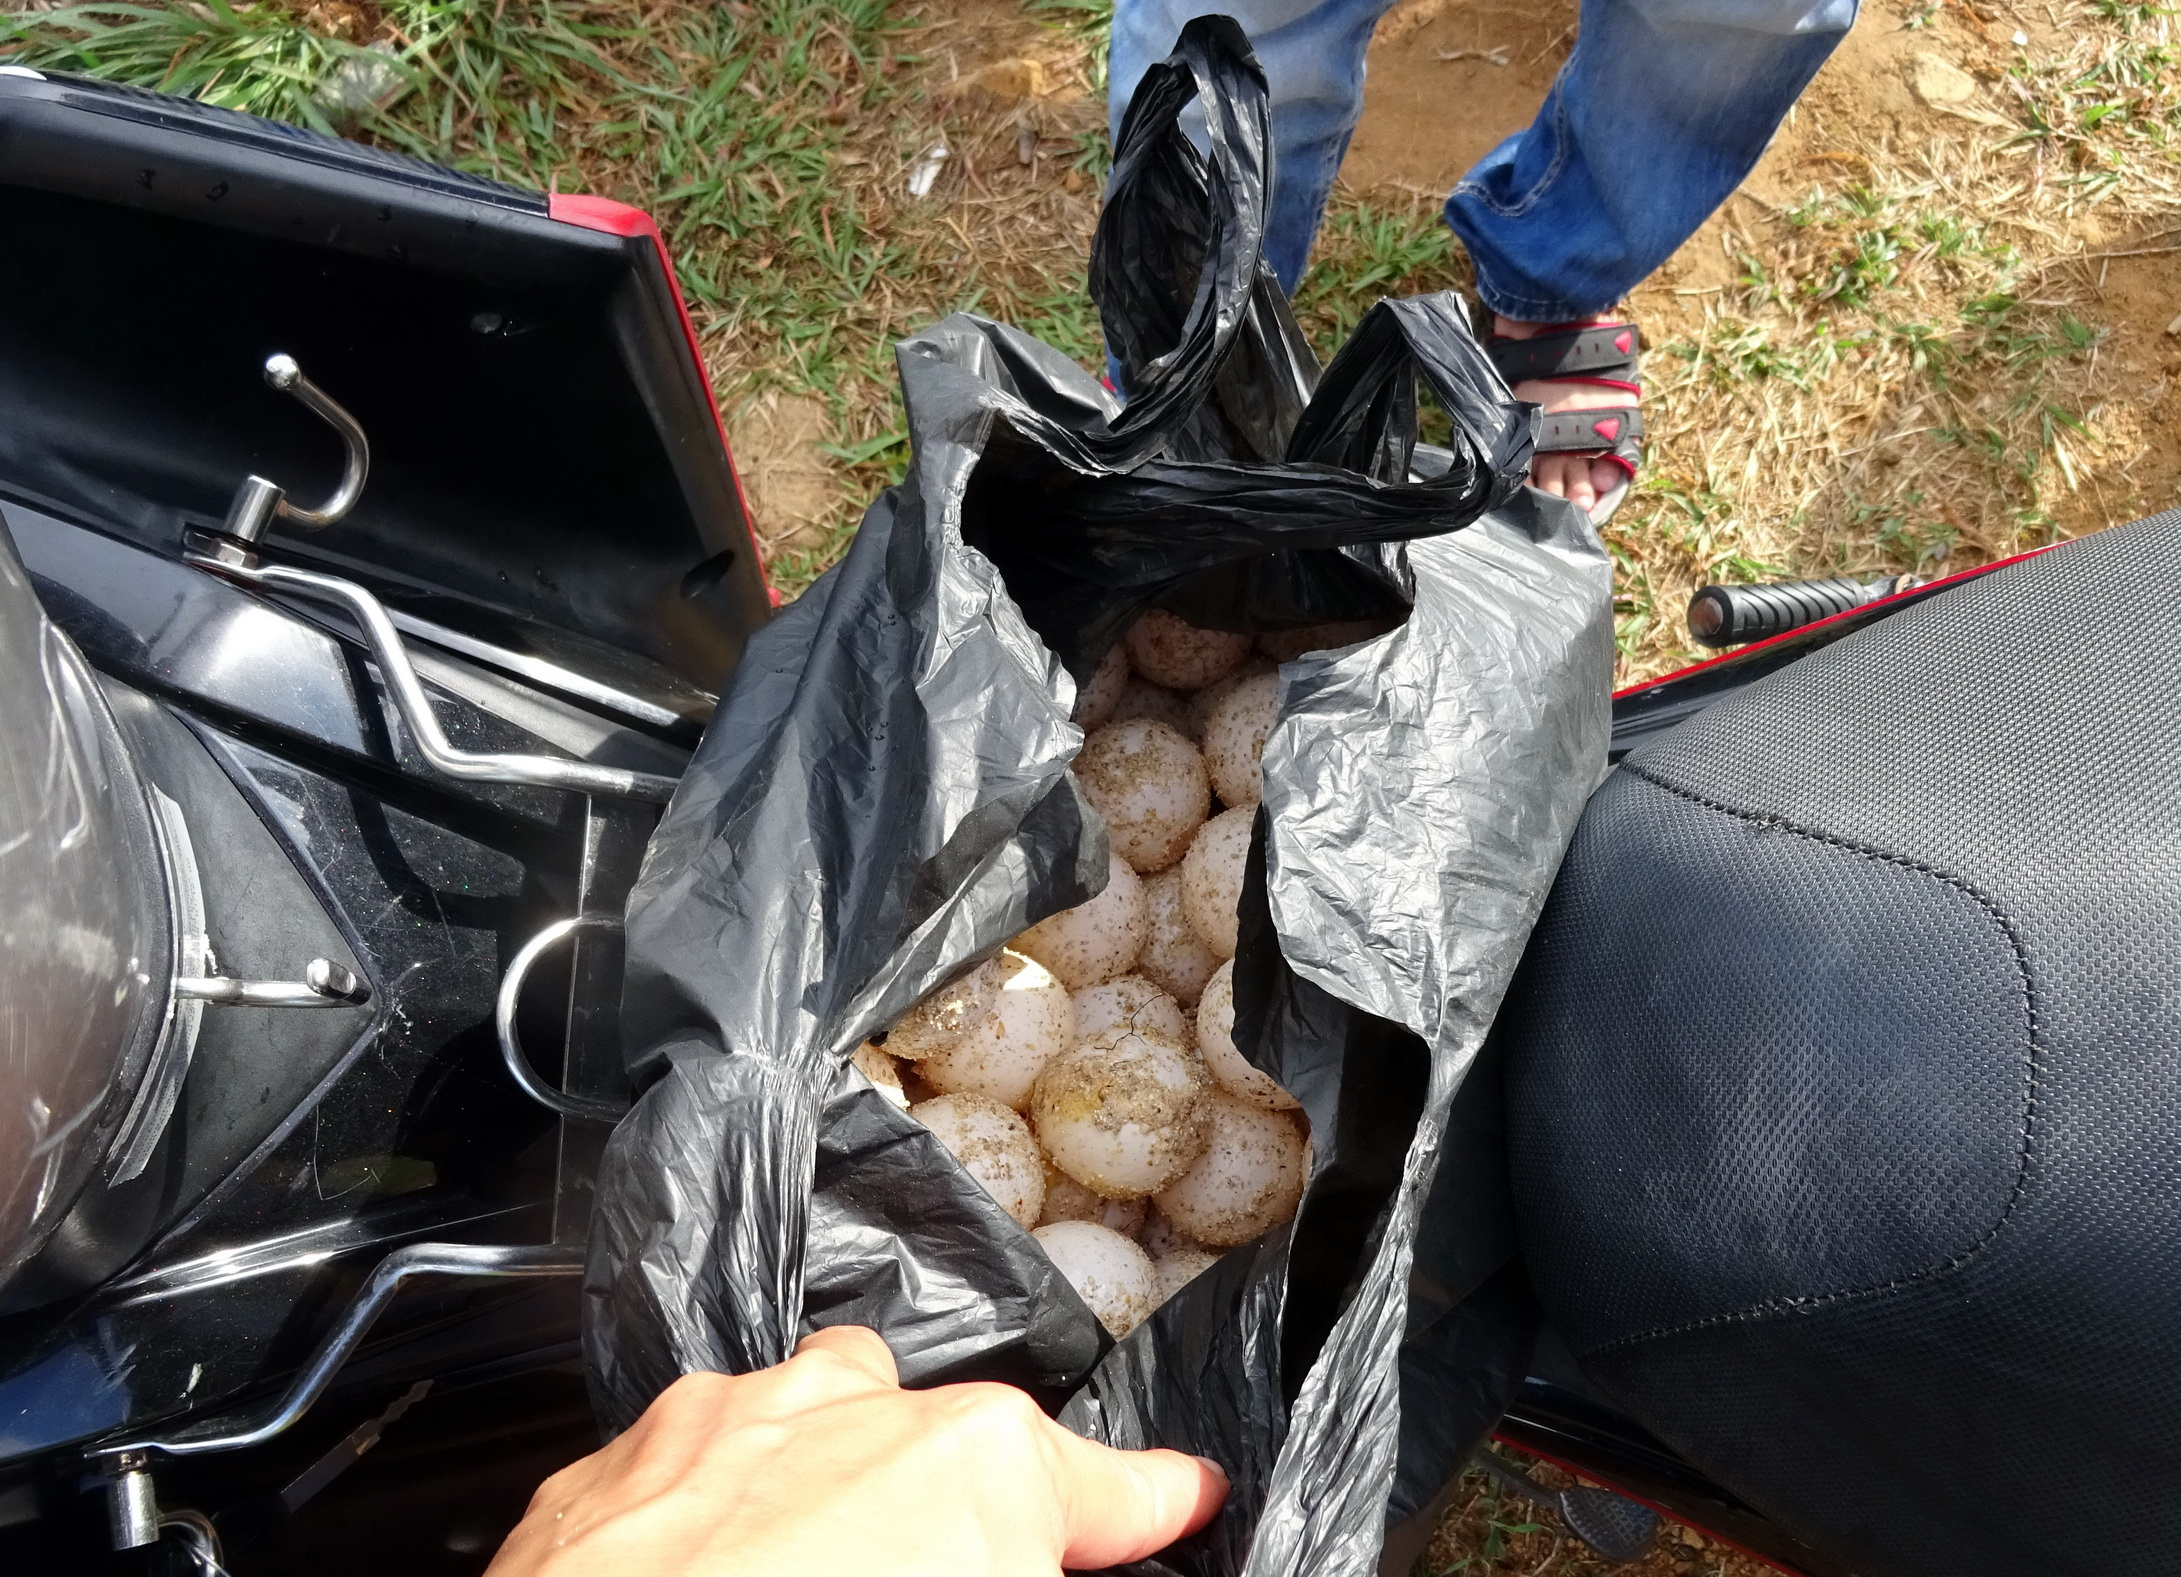 Vietnam prosecutor says turtle egg is not from a turtle